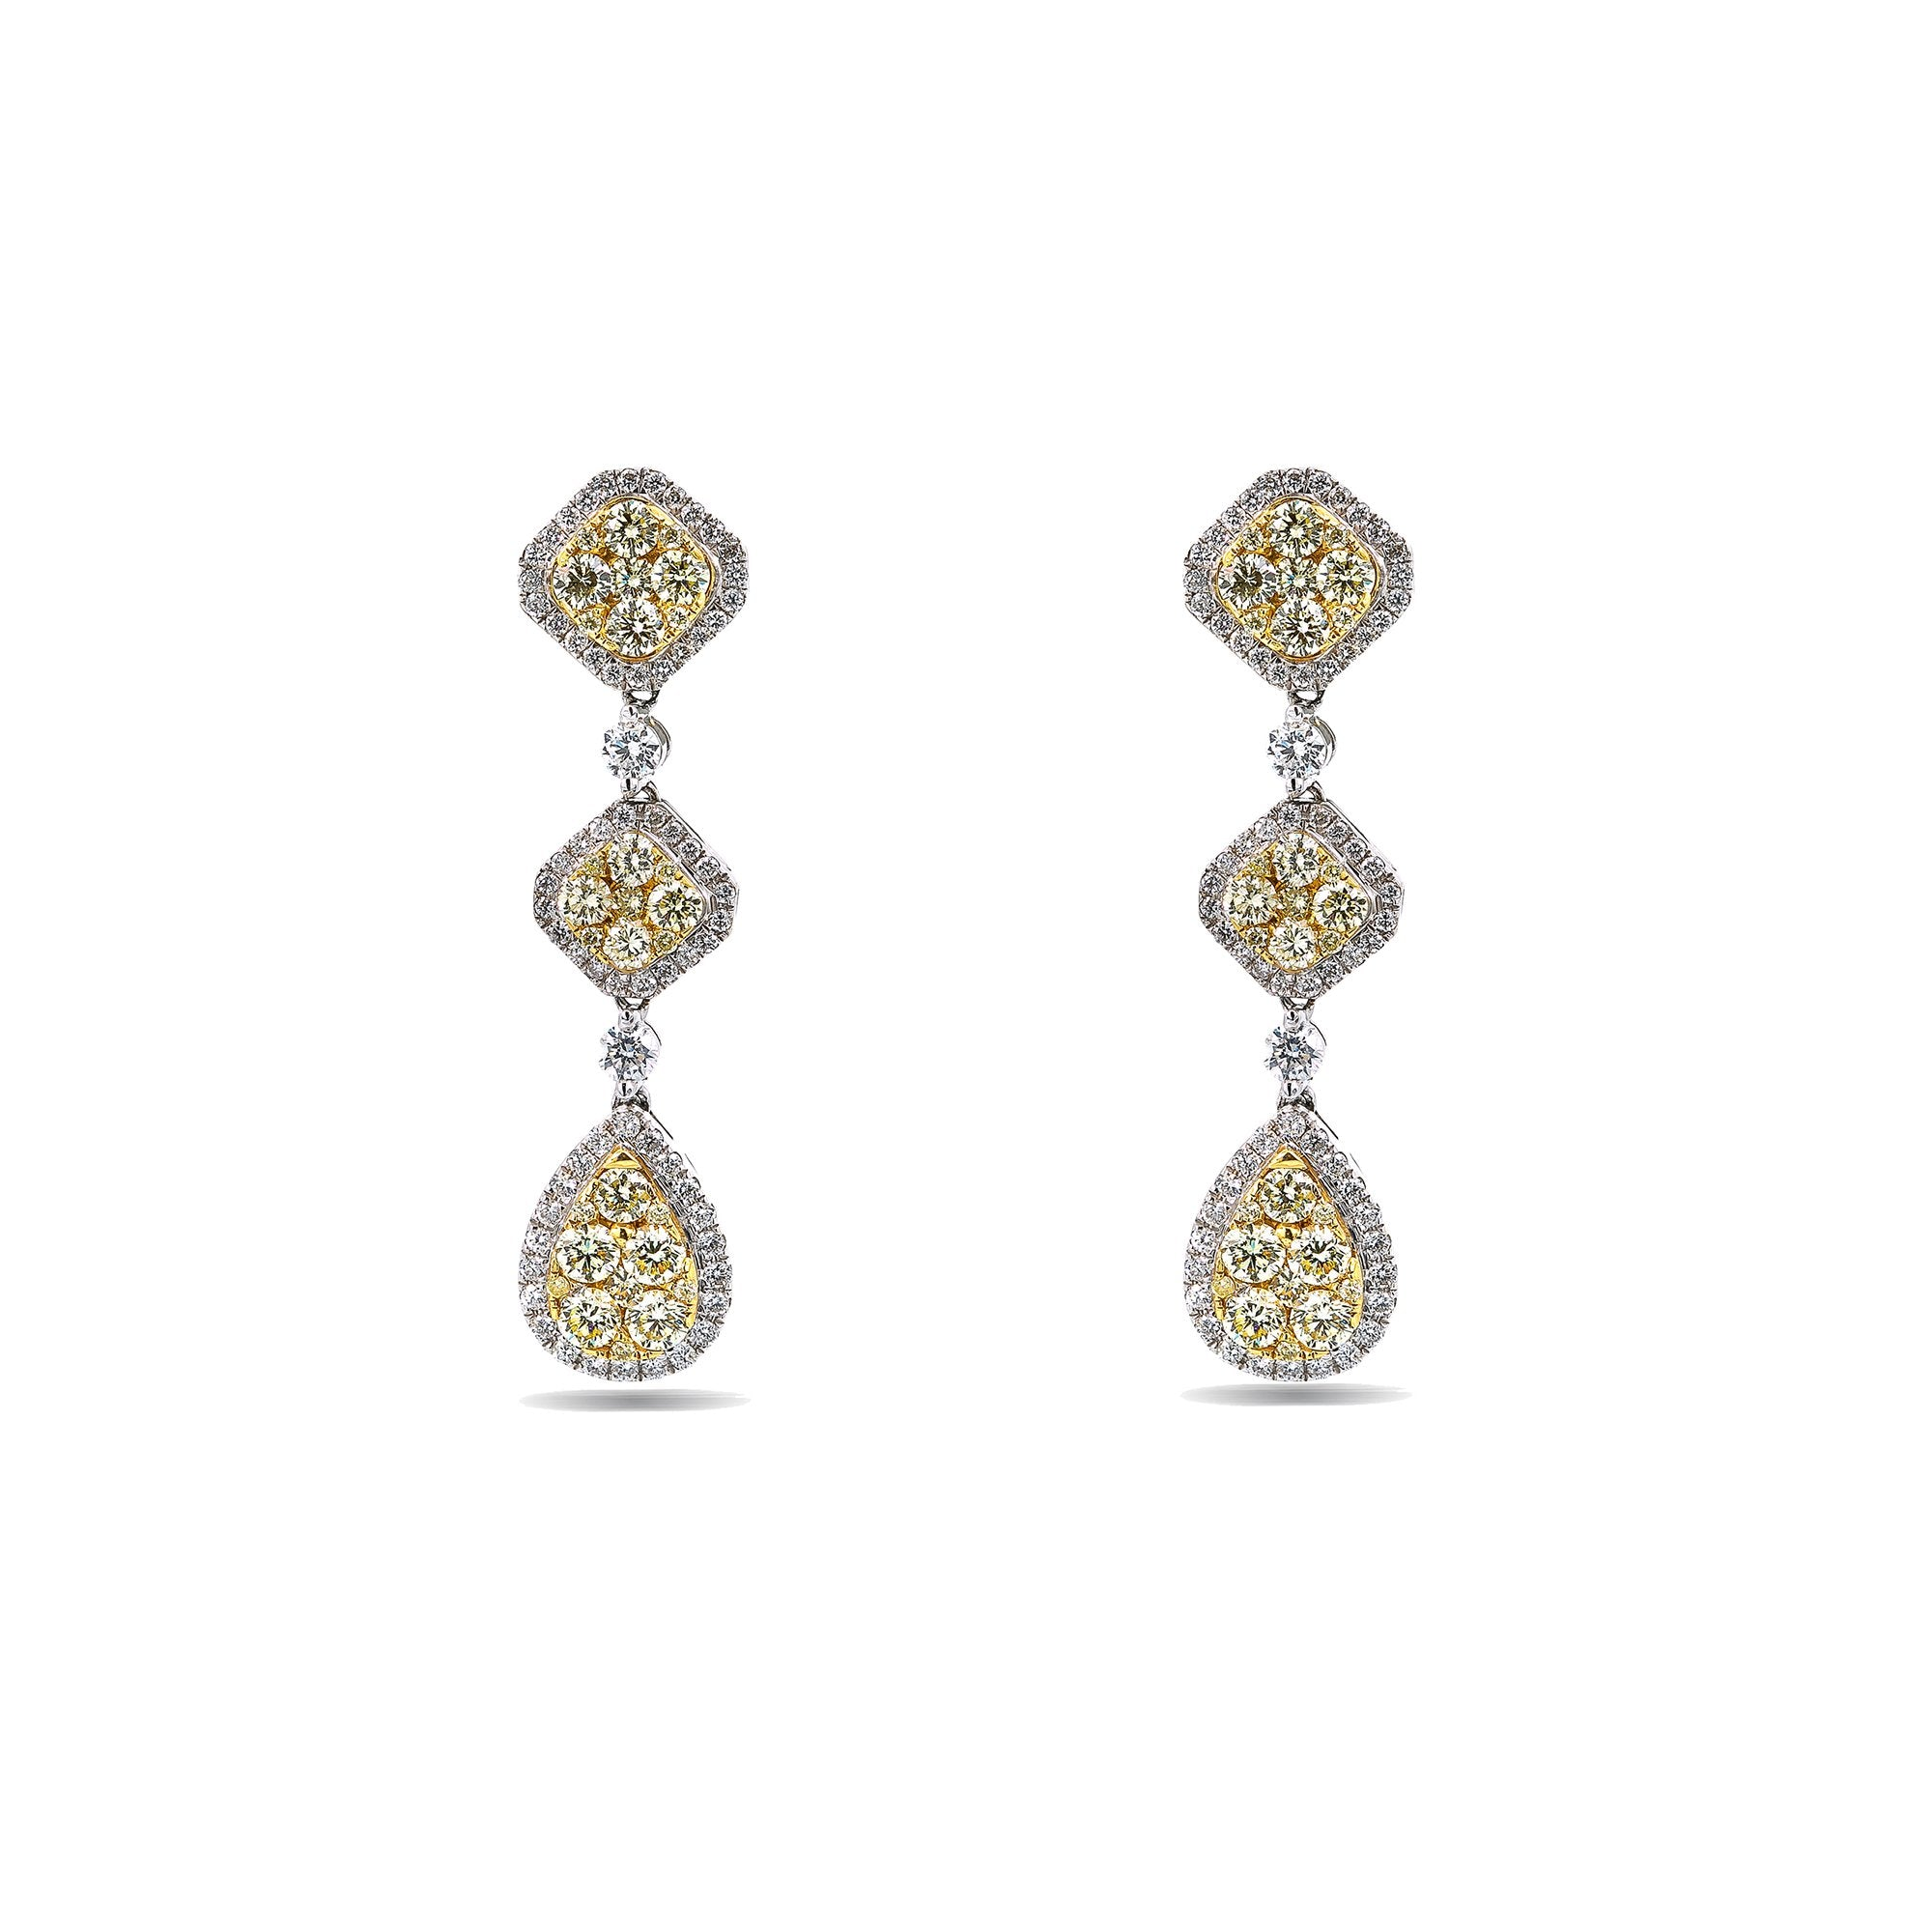 18K White Gold Ladies Drop Earrings With Total 3.07 CT Of Colored Diamonds